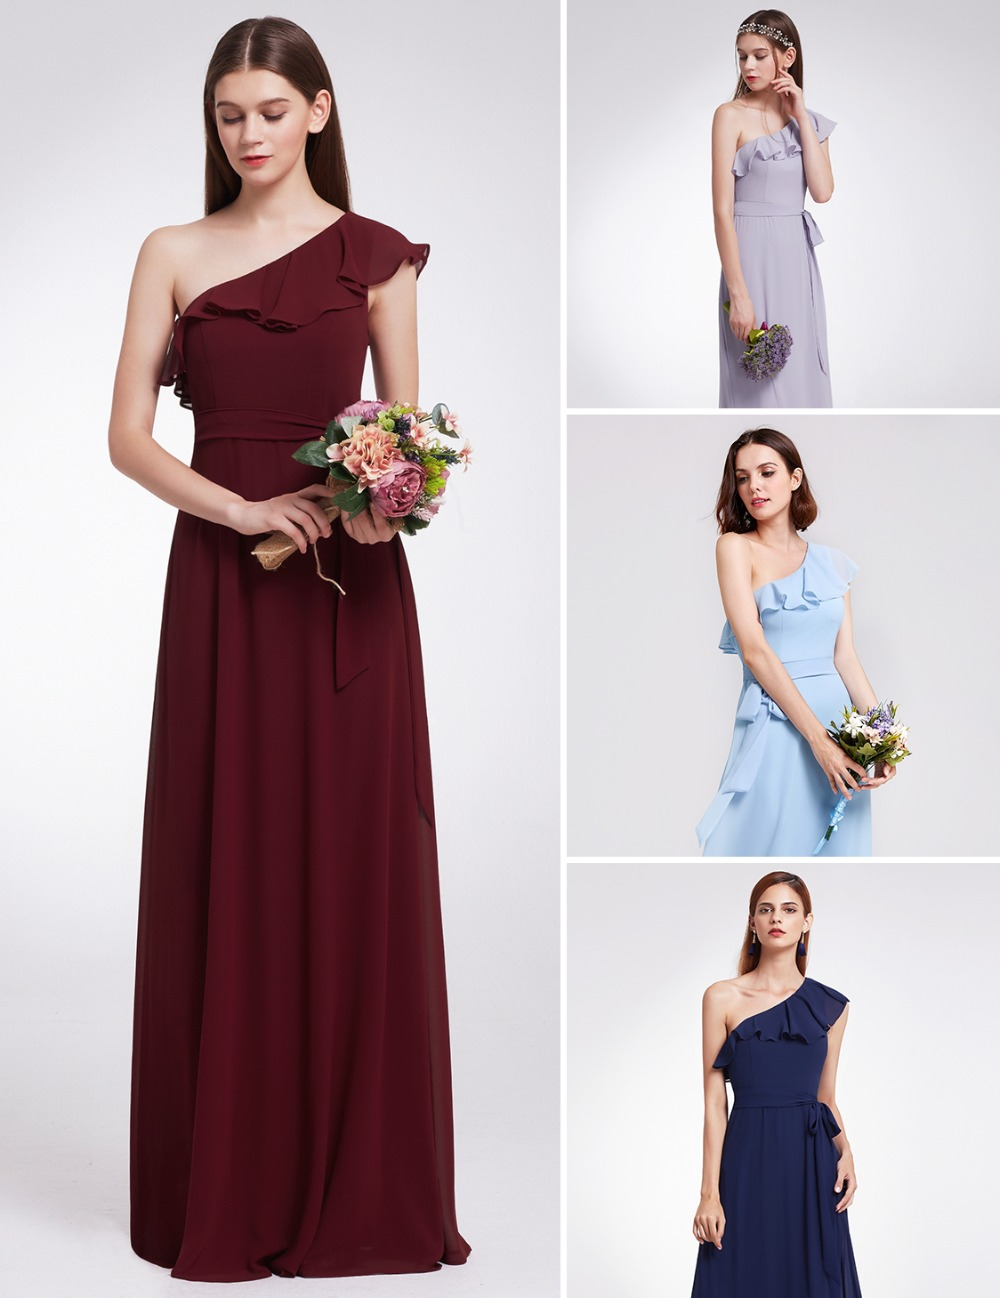 2019 Chiffon Evening Dresses Long Ever Pretty Women Elegant One Shoulder A line Elegant Prom Party